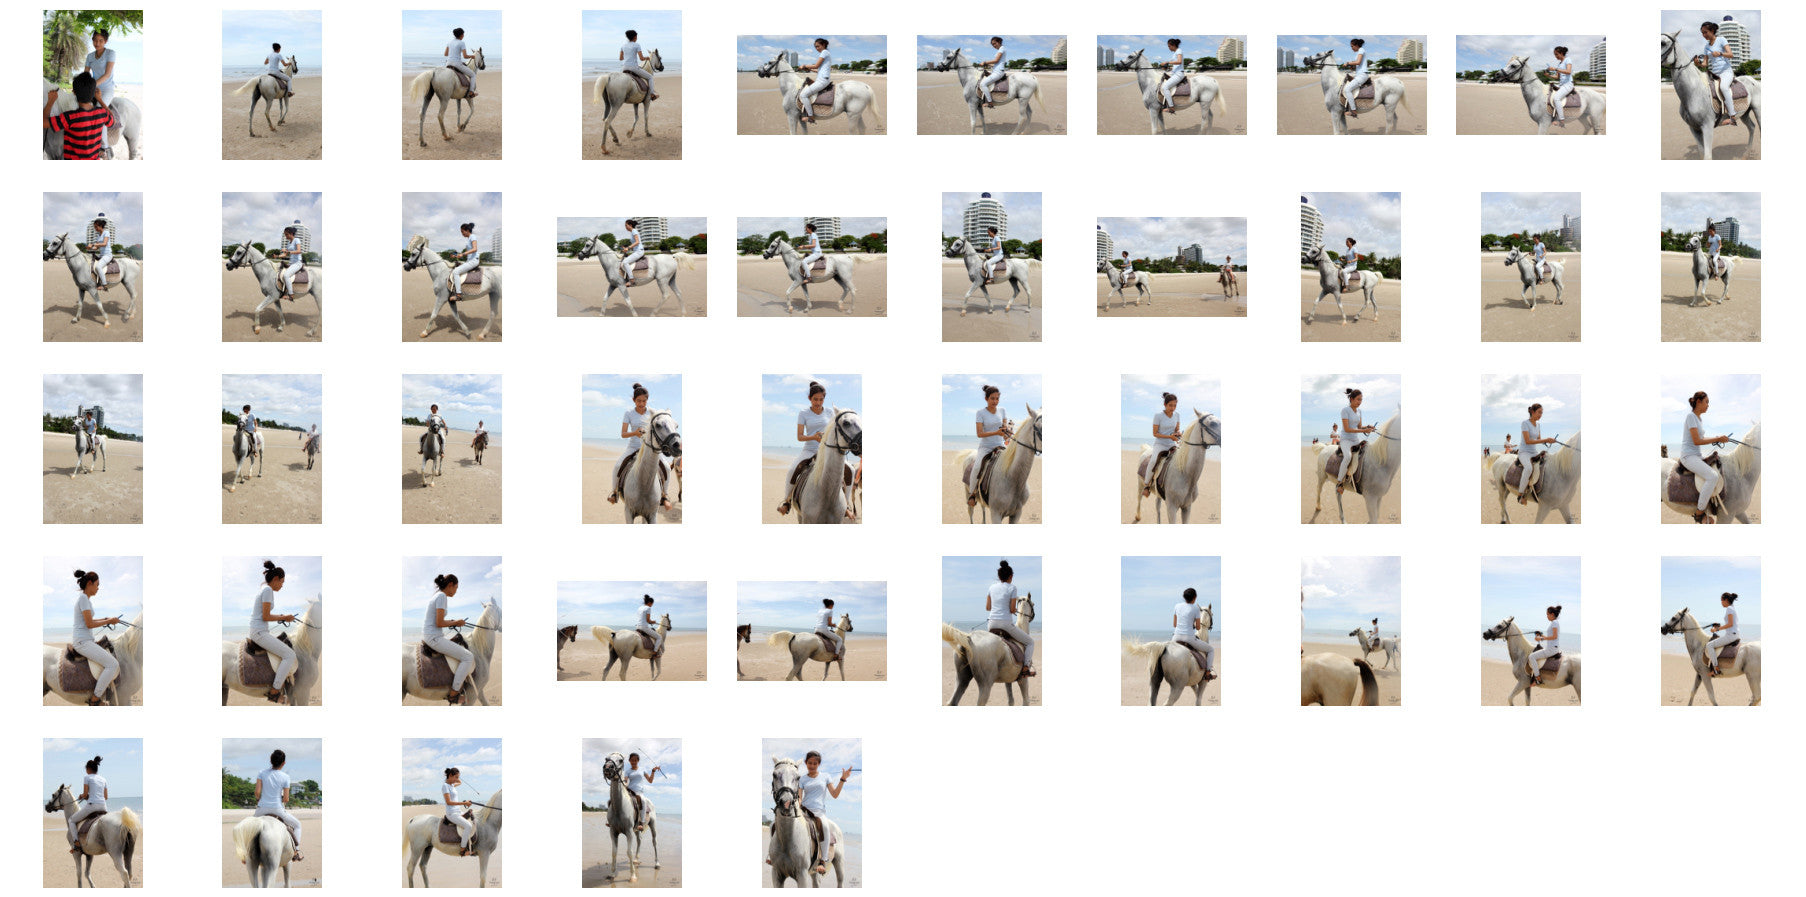 Som in Jodhpurs Riding with Saddle on White Arabian Horse, Part 1 - Riding.Vision